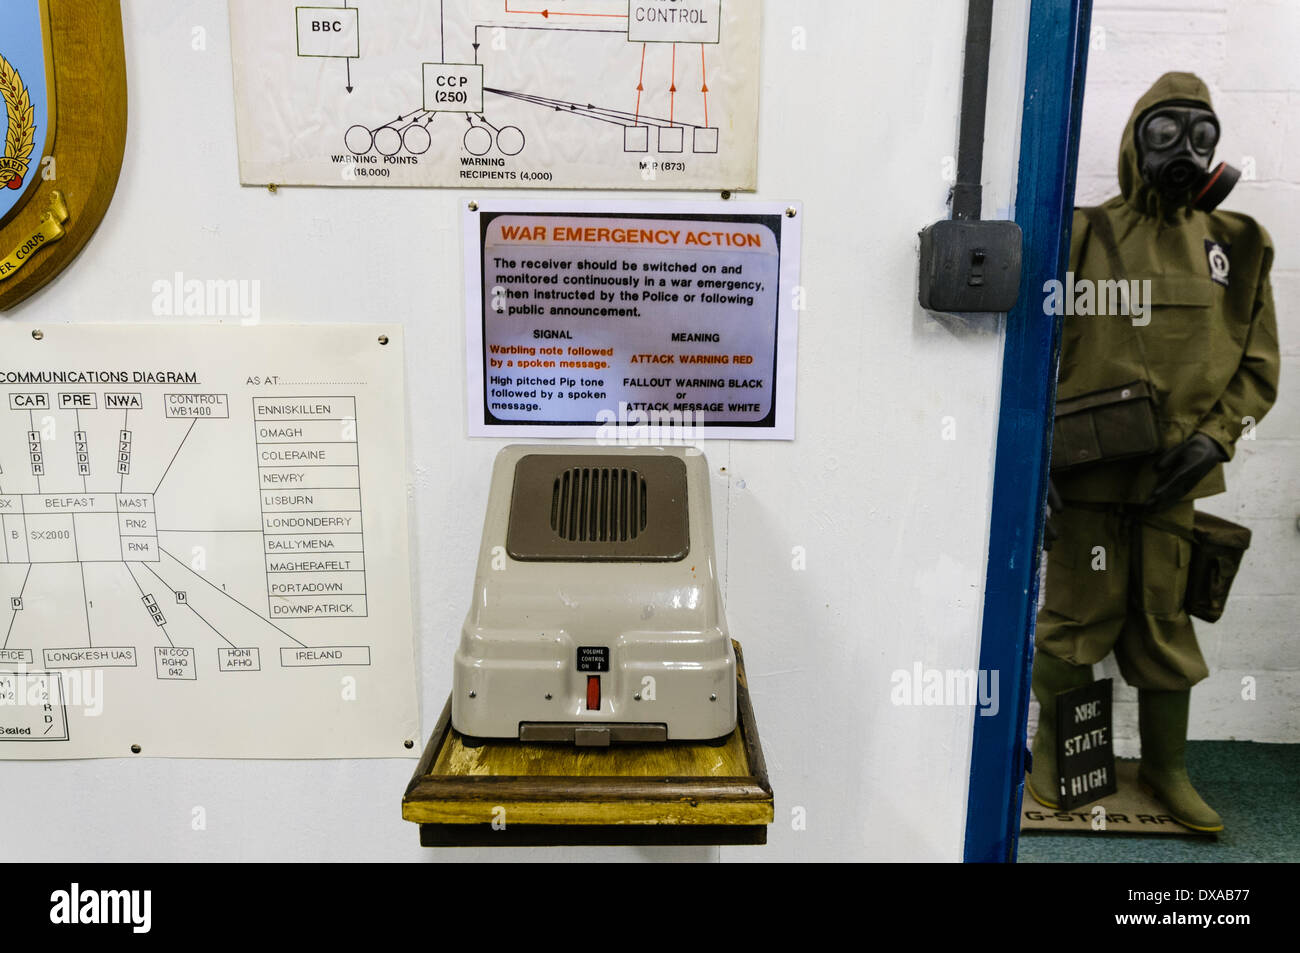 Emergency intercom in a 1980s cold war nuclear bunker - Stock Image